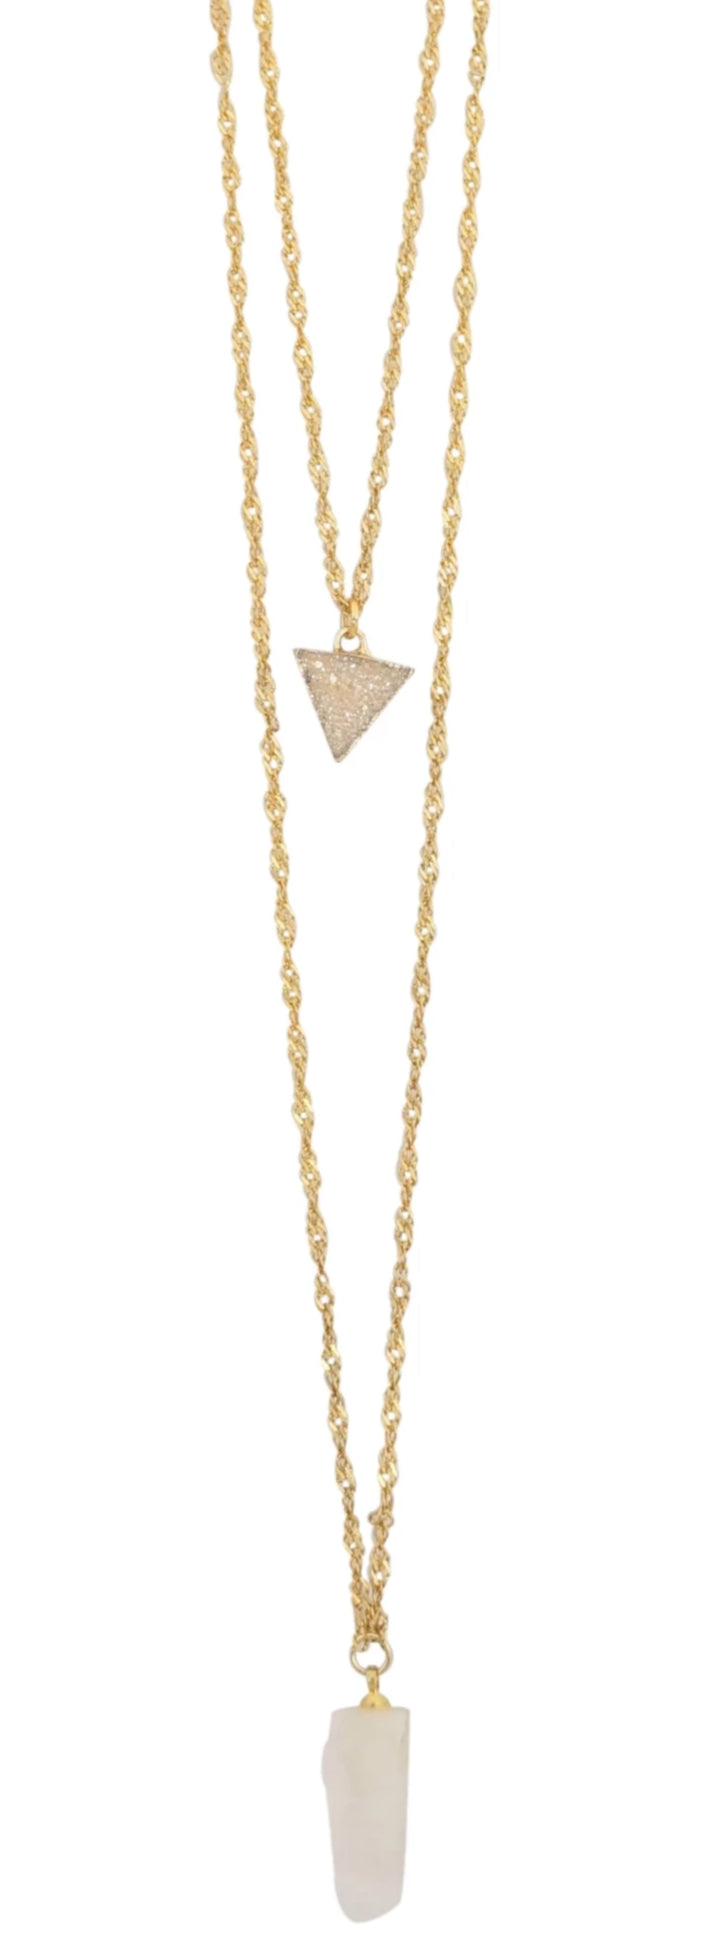 Grace Necklace - Carolyn Hearn Designs